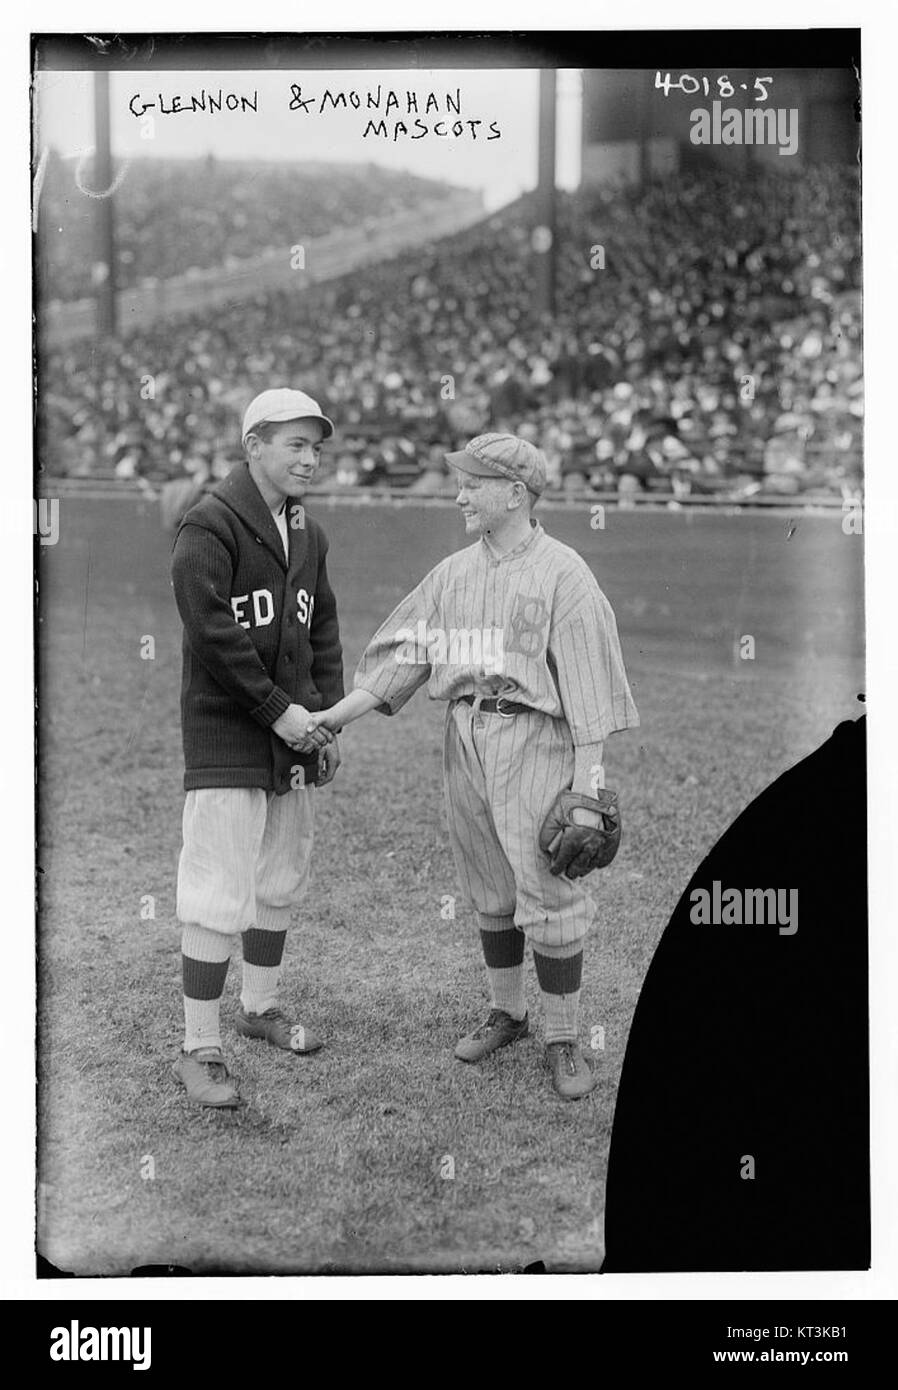 Red sox dodgers stock photos red sox dodgers stock images alamy glennon monahan mascots red sox dodgers 1916 world series buycottarizona Image collections